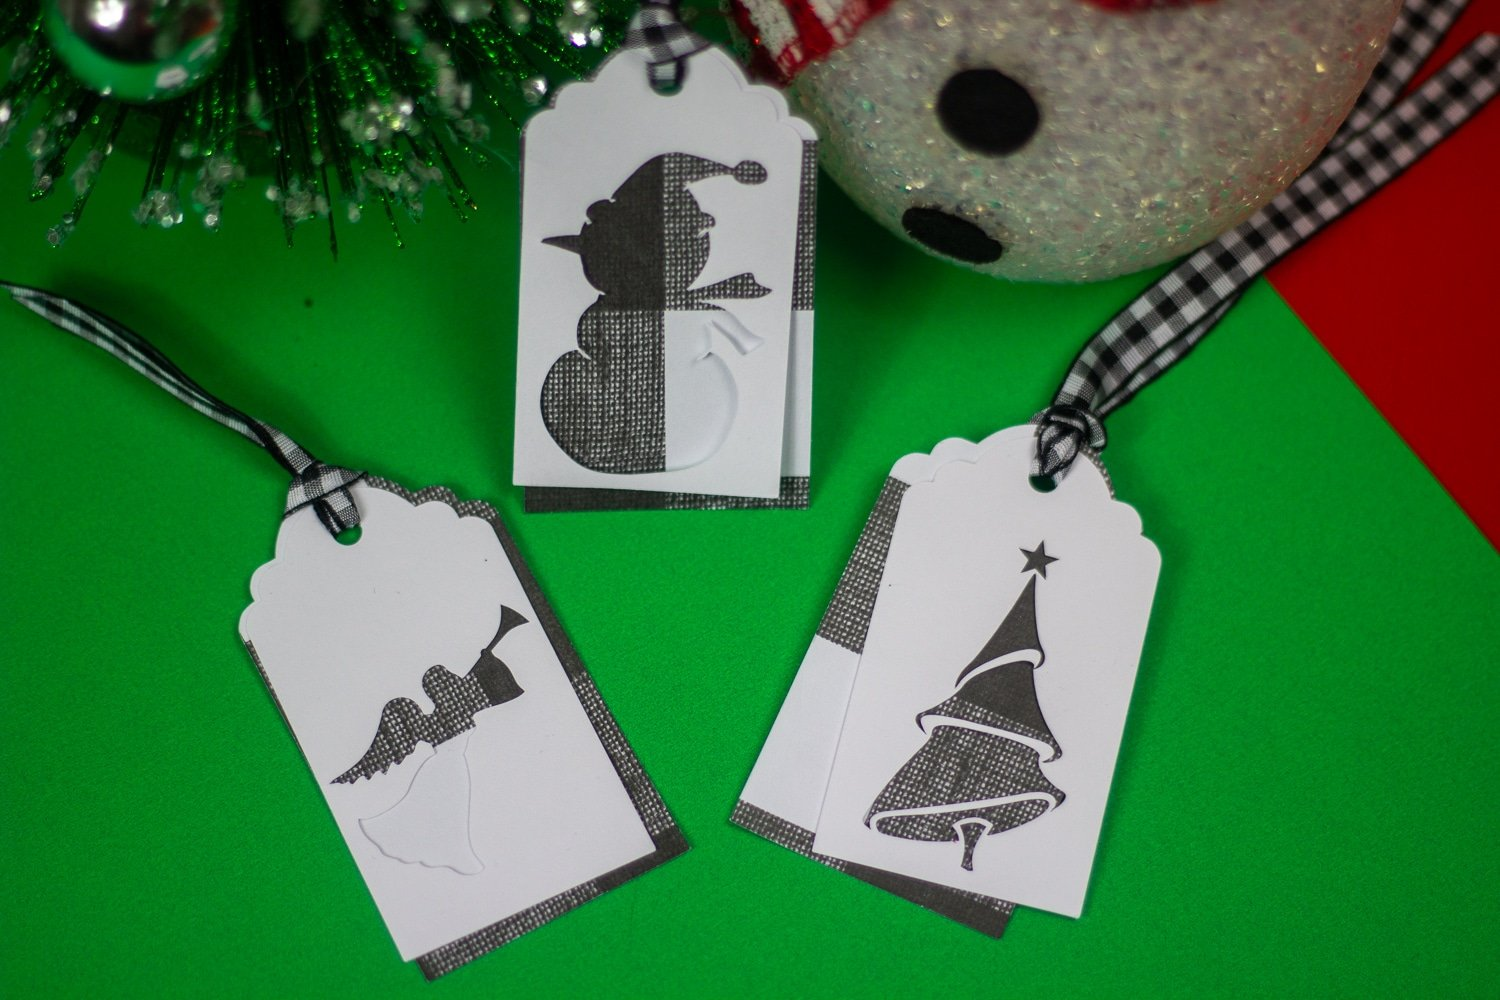 I love making these Easy Cricut Christmas Gift Tags! They're so fun and simple--but they make a beautiful personalized gift tag you can put on anything. And the best part is, they're simple enough that you can make them in a flash the night before Christmas and no one is the wiser.